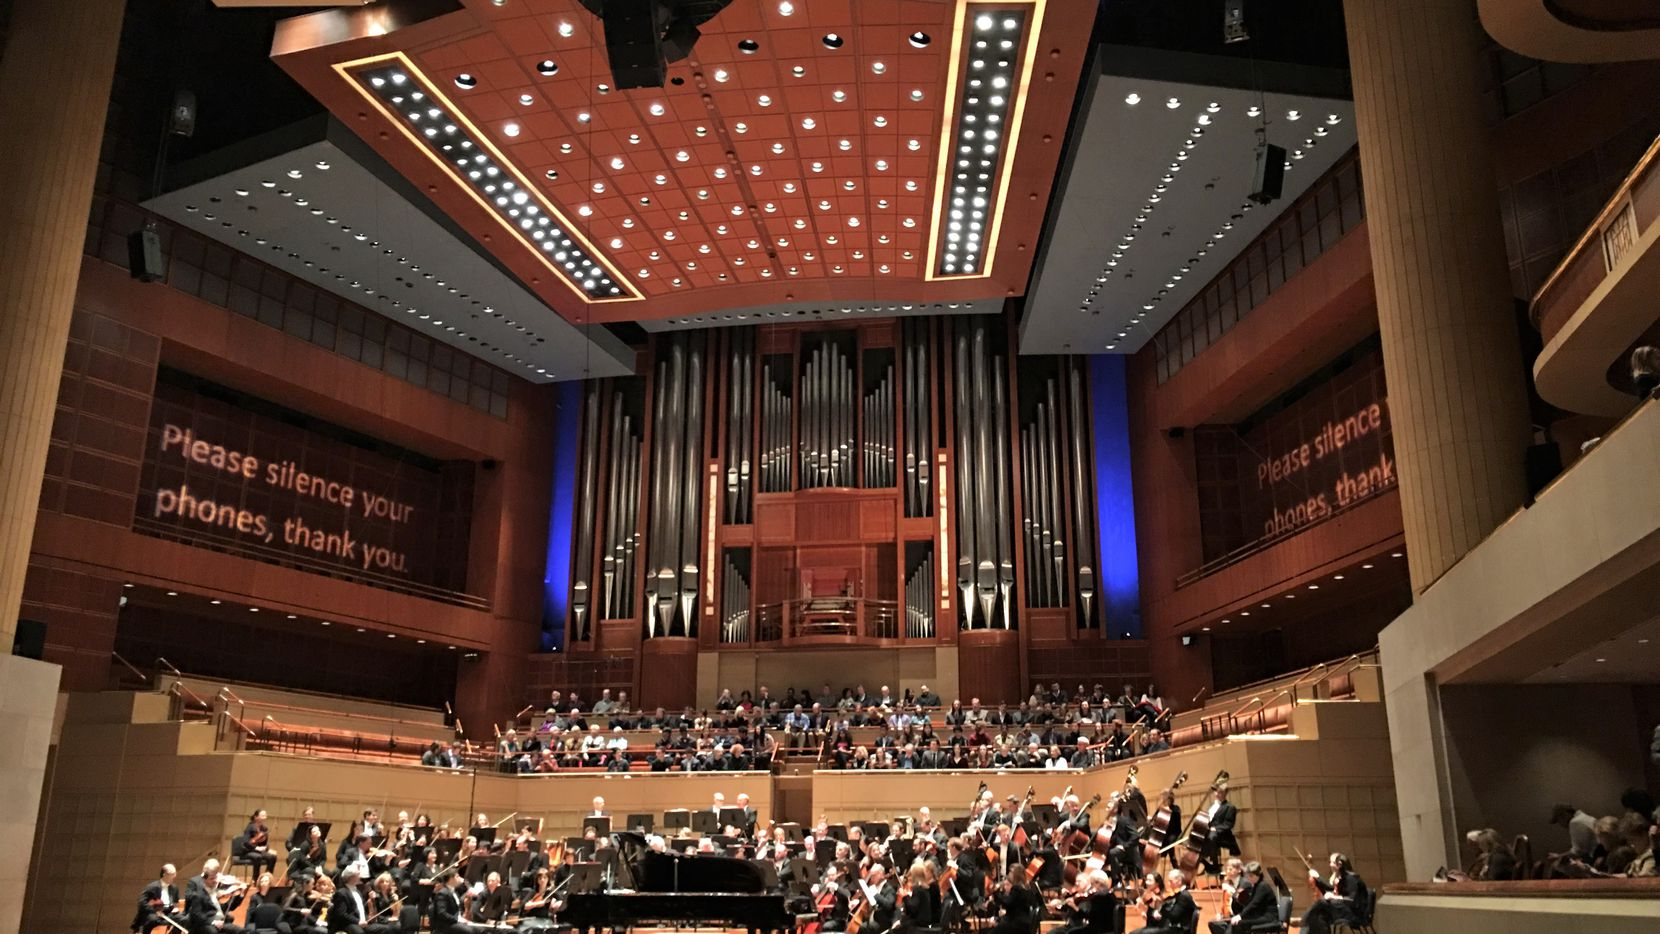 The Dallas Symphony Orchestra prepares to play the Philip Glass Double Concerto for two pianos, with duo pianists Katia and Marielle Labèque, and music director Jaap van Zweden conducting, on Feb. 2, 2018 at the  Meyerson Symphony Center. (Scott Cantrell/Special Contributor)